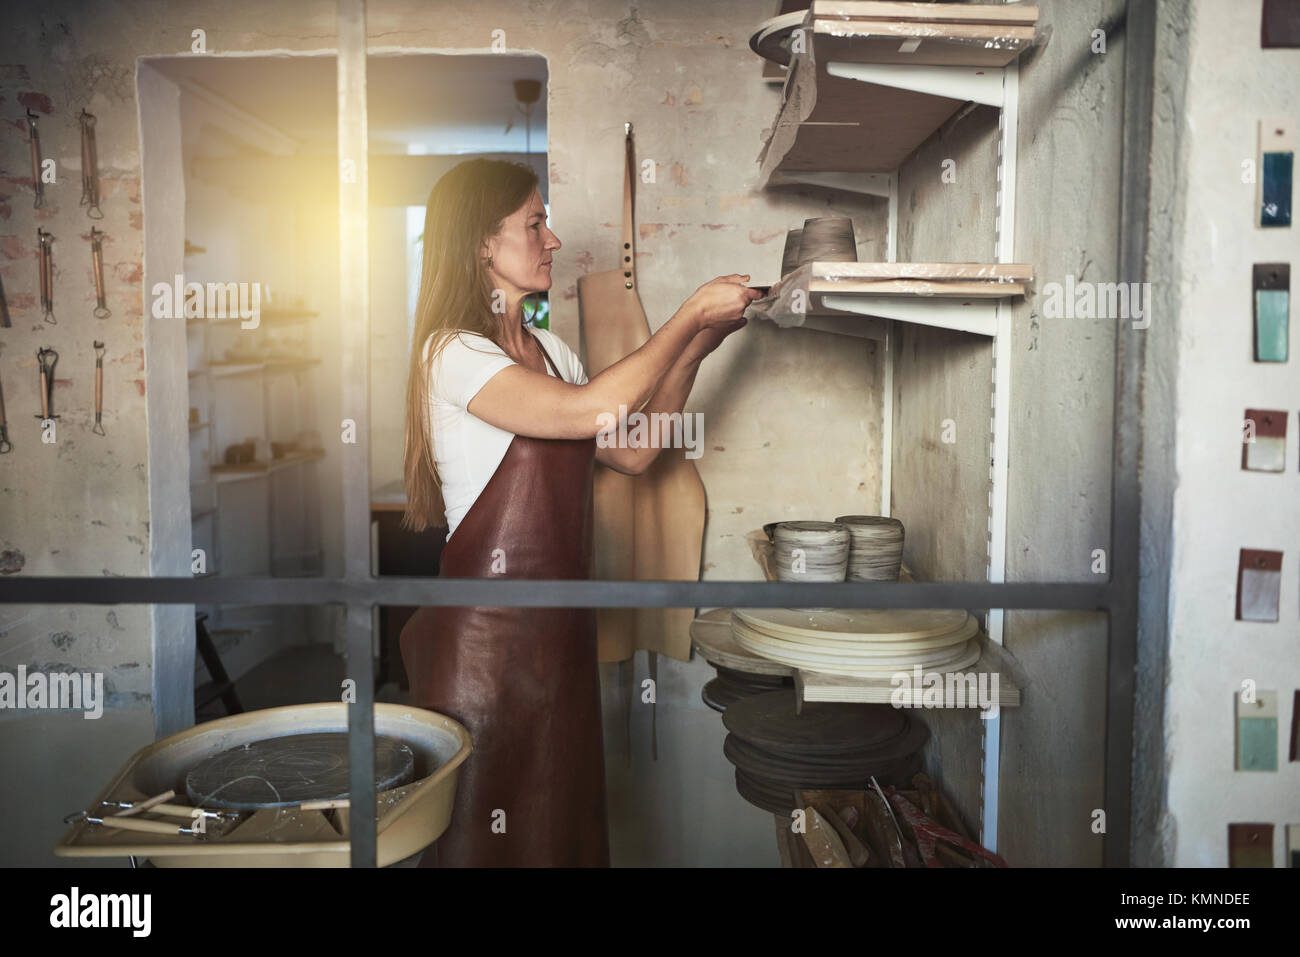 Female artisan standing alone in her creative ceramic studio putting a freshly turned pot made of clay onto a shelf - Stock Image